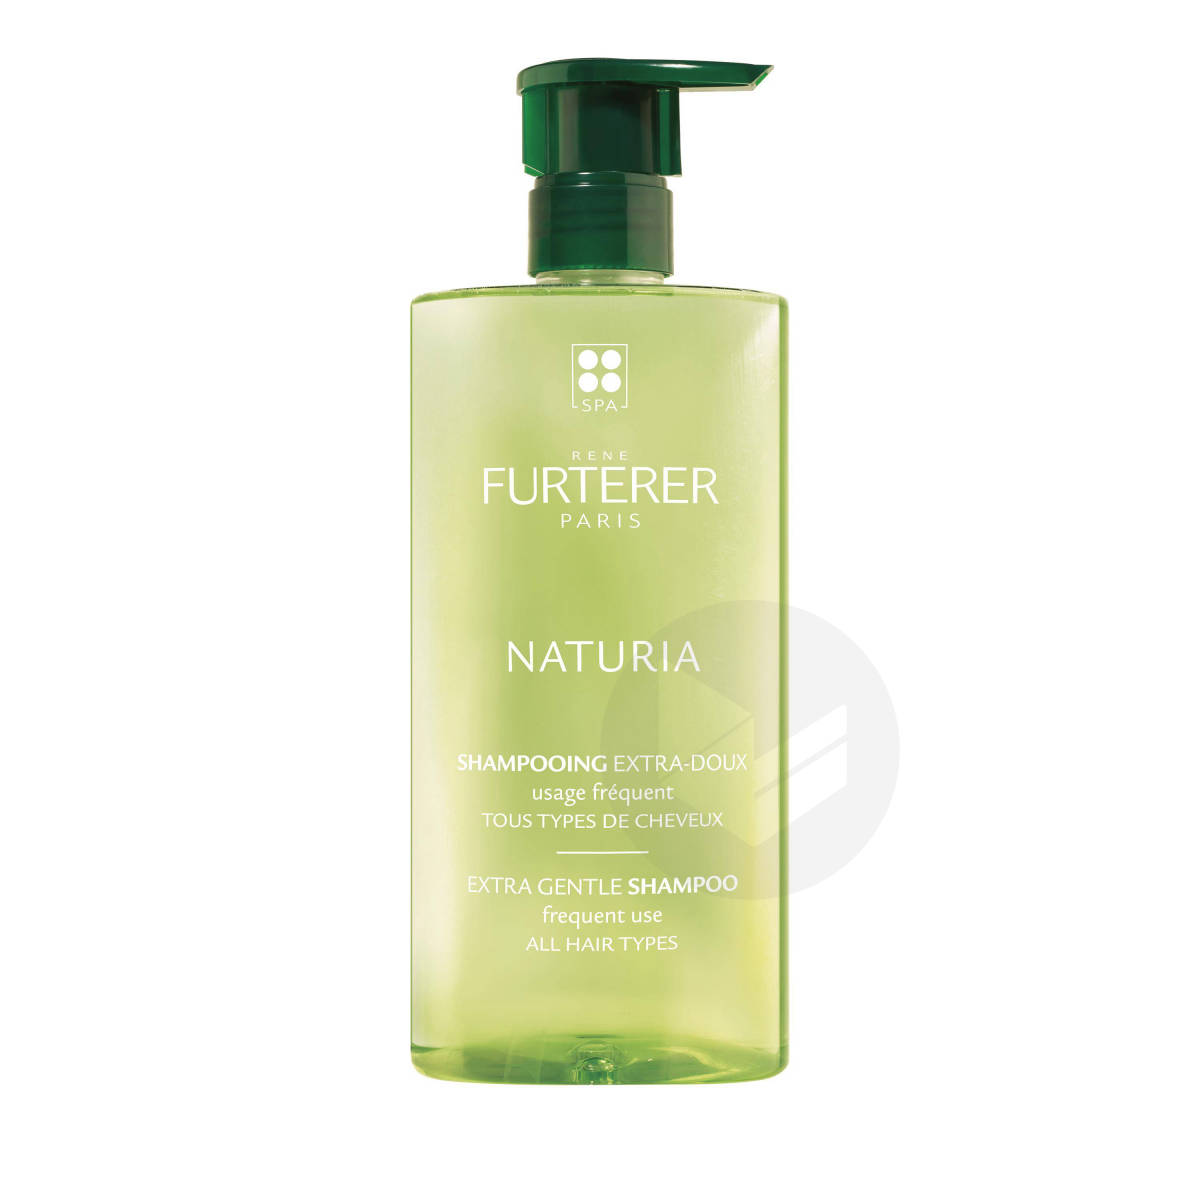 Shampooing extra-doux usage fréquent 500ml